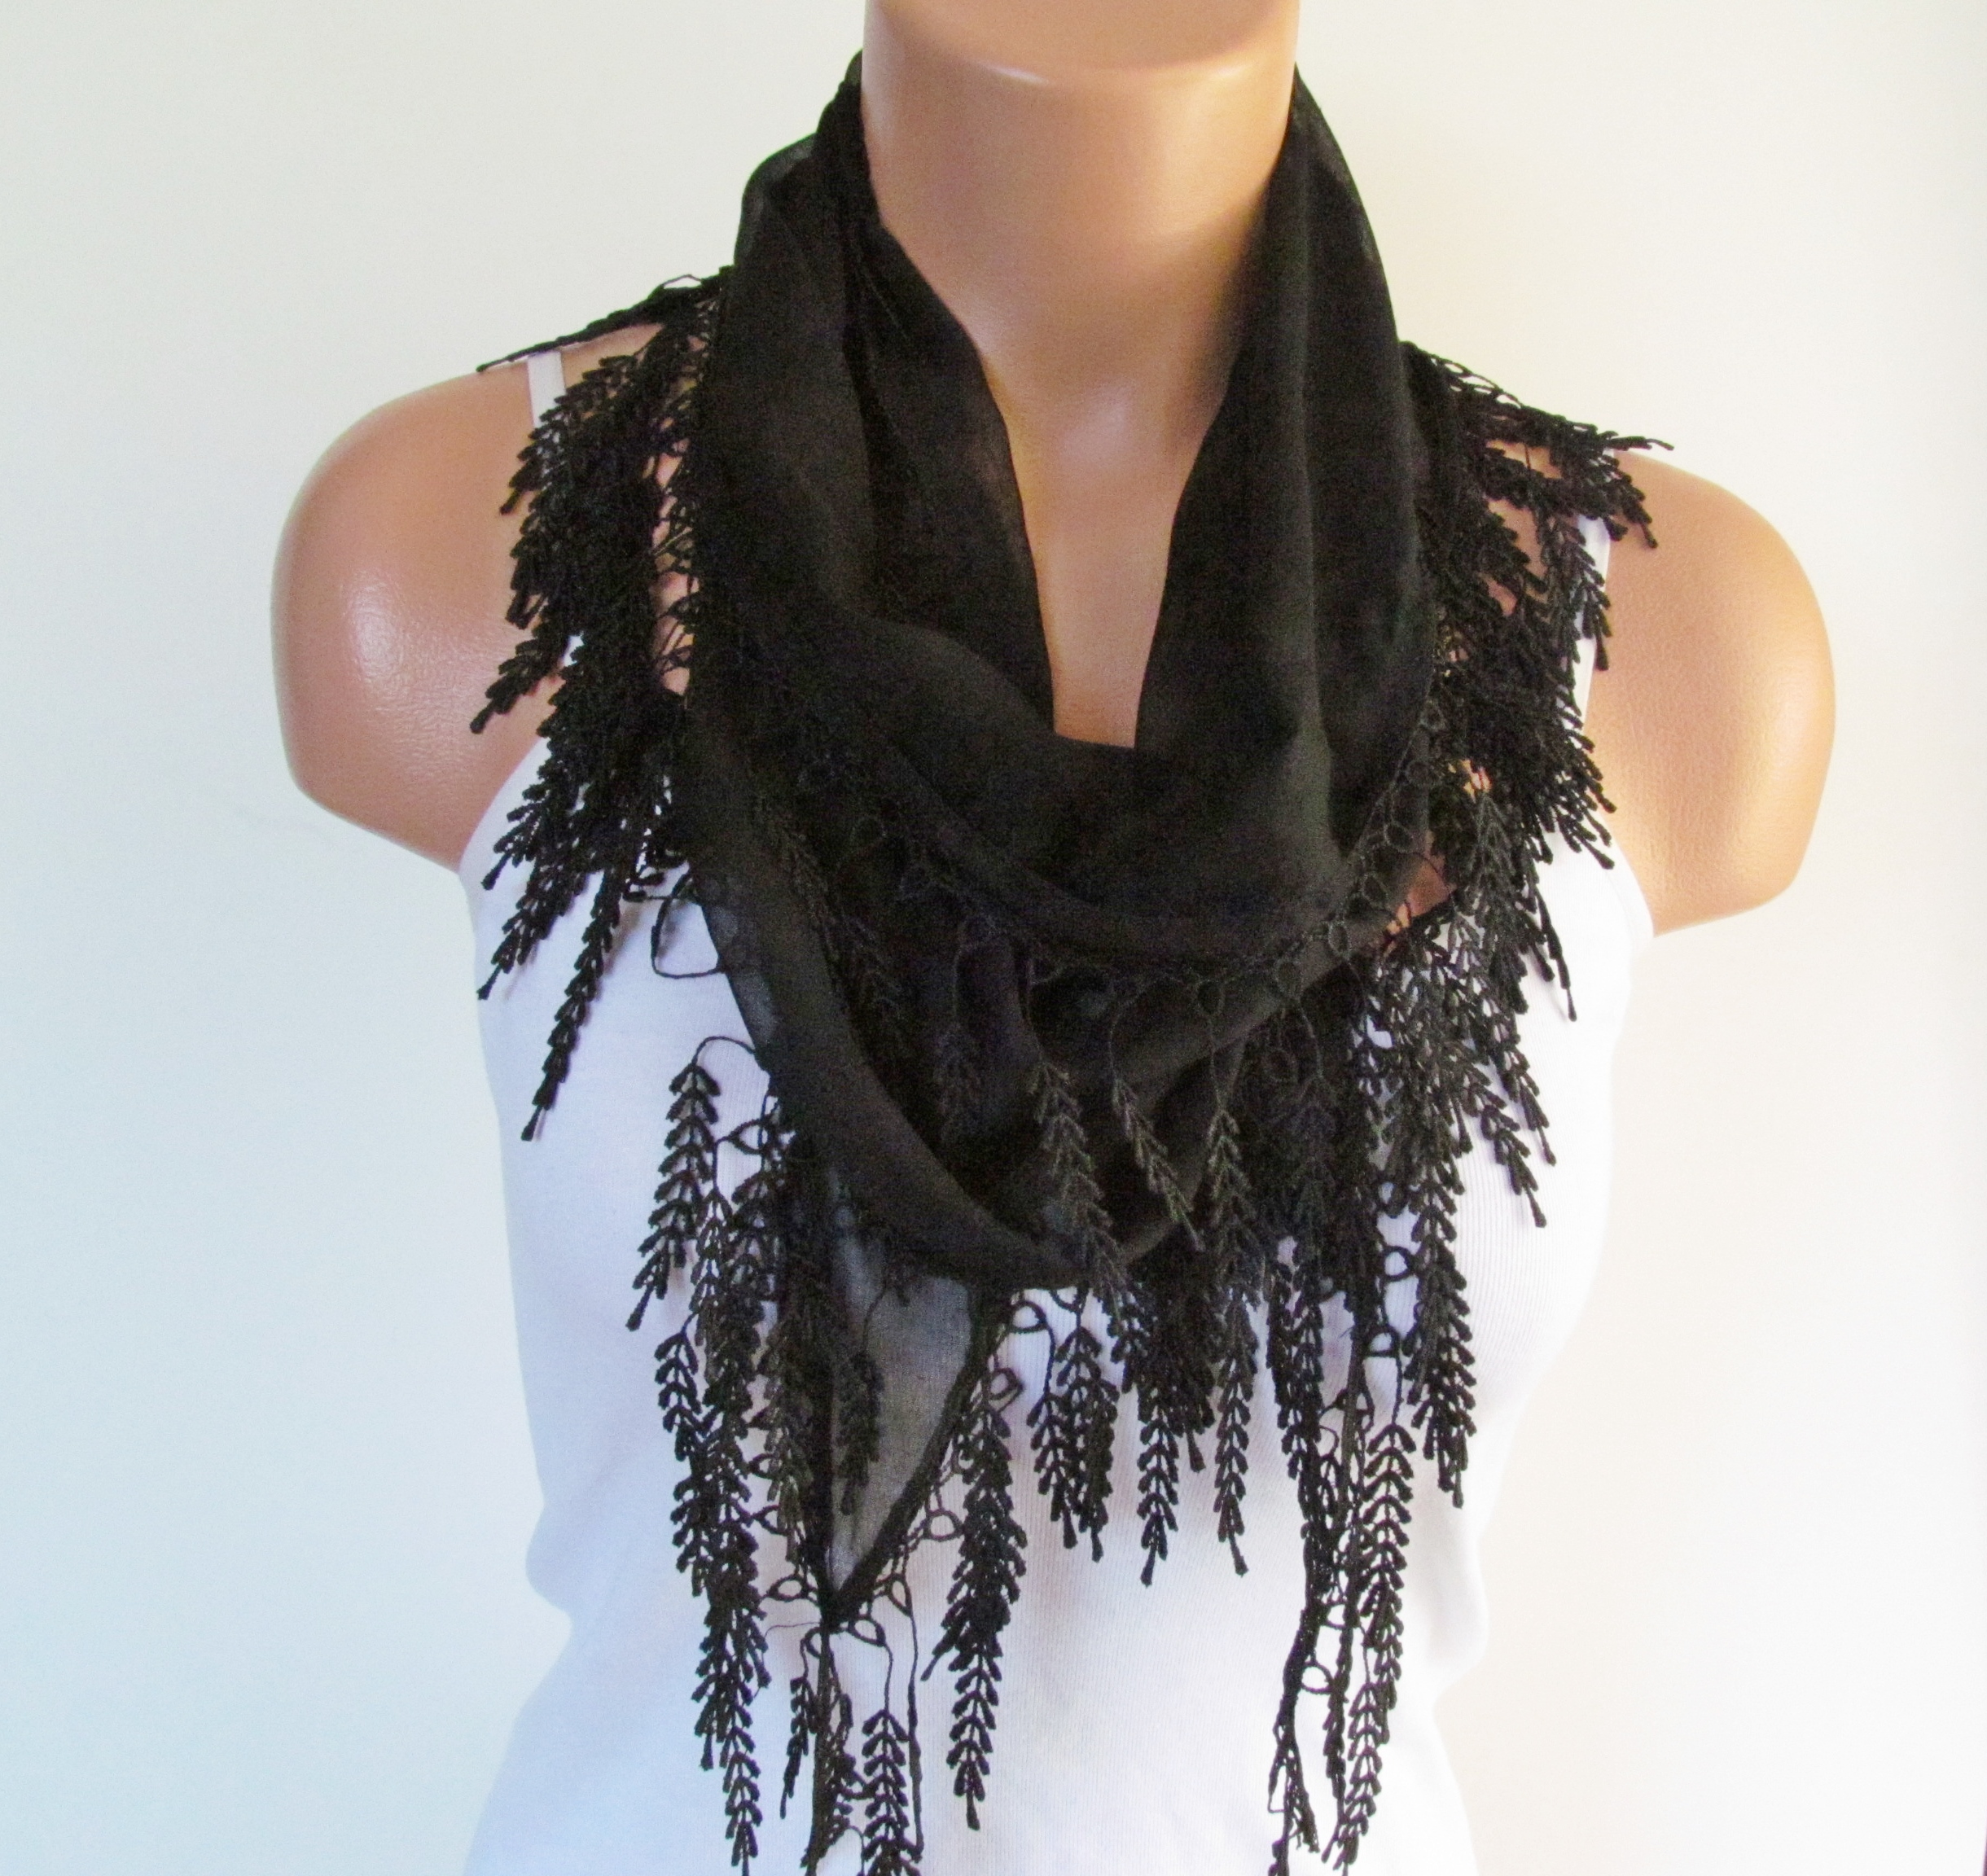 f5d23a3a26552 Long Scarf With Fringe-New Season Scarf-Headband-Necklace- Infinity Scarf-  Spring Accessory-Black Sc on Luulla